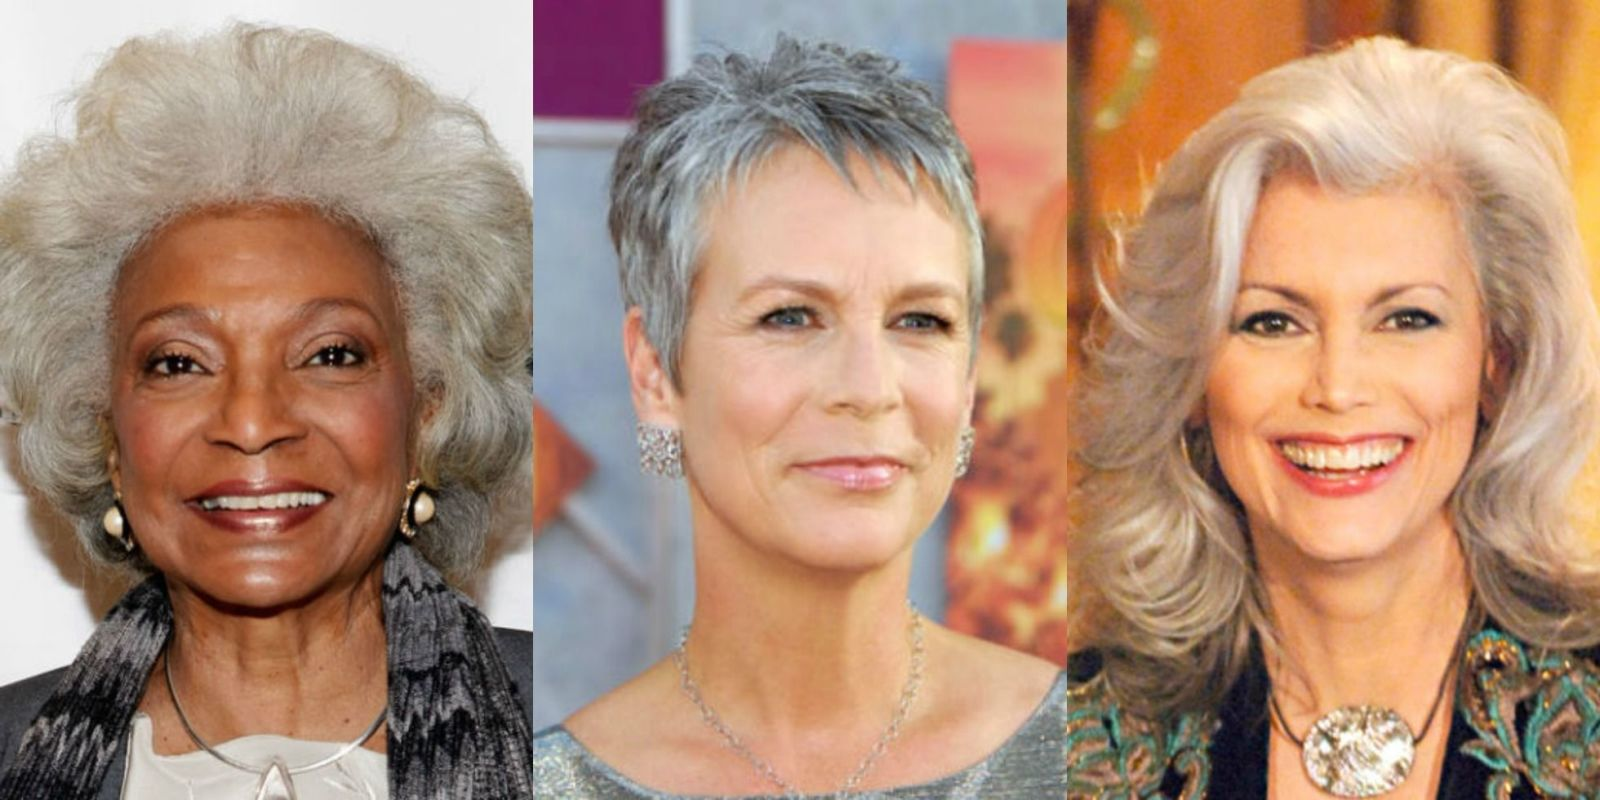 Superb 19 Gray Hairstyles Amp Haircuts Pictures Of Gray Hair On Celebrities Hairstyles For Women Draintrainus